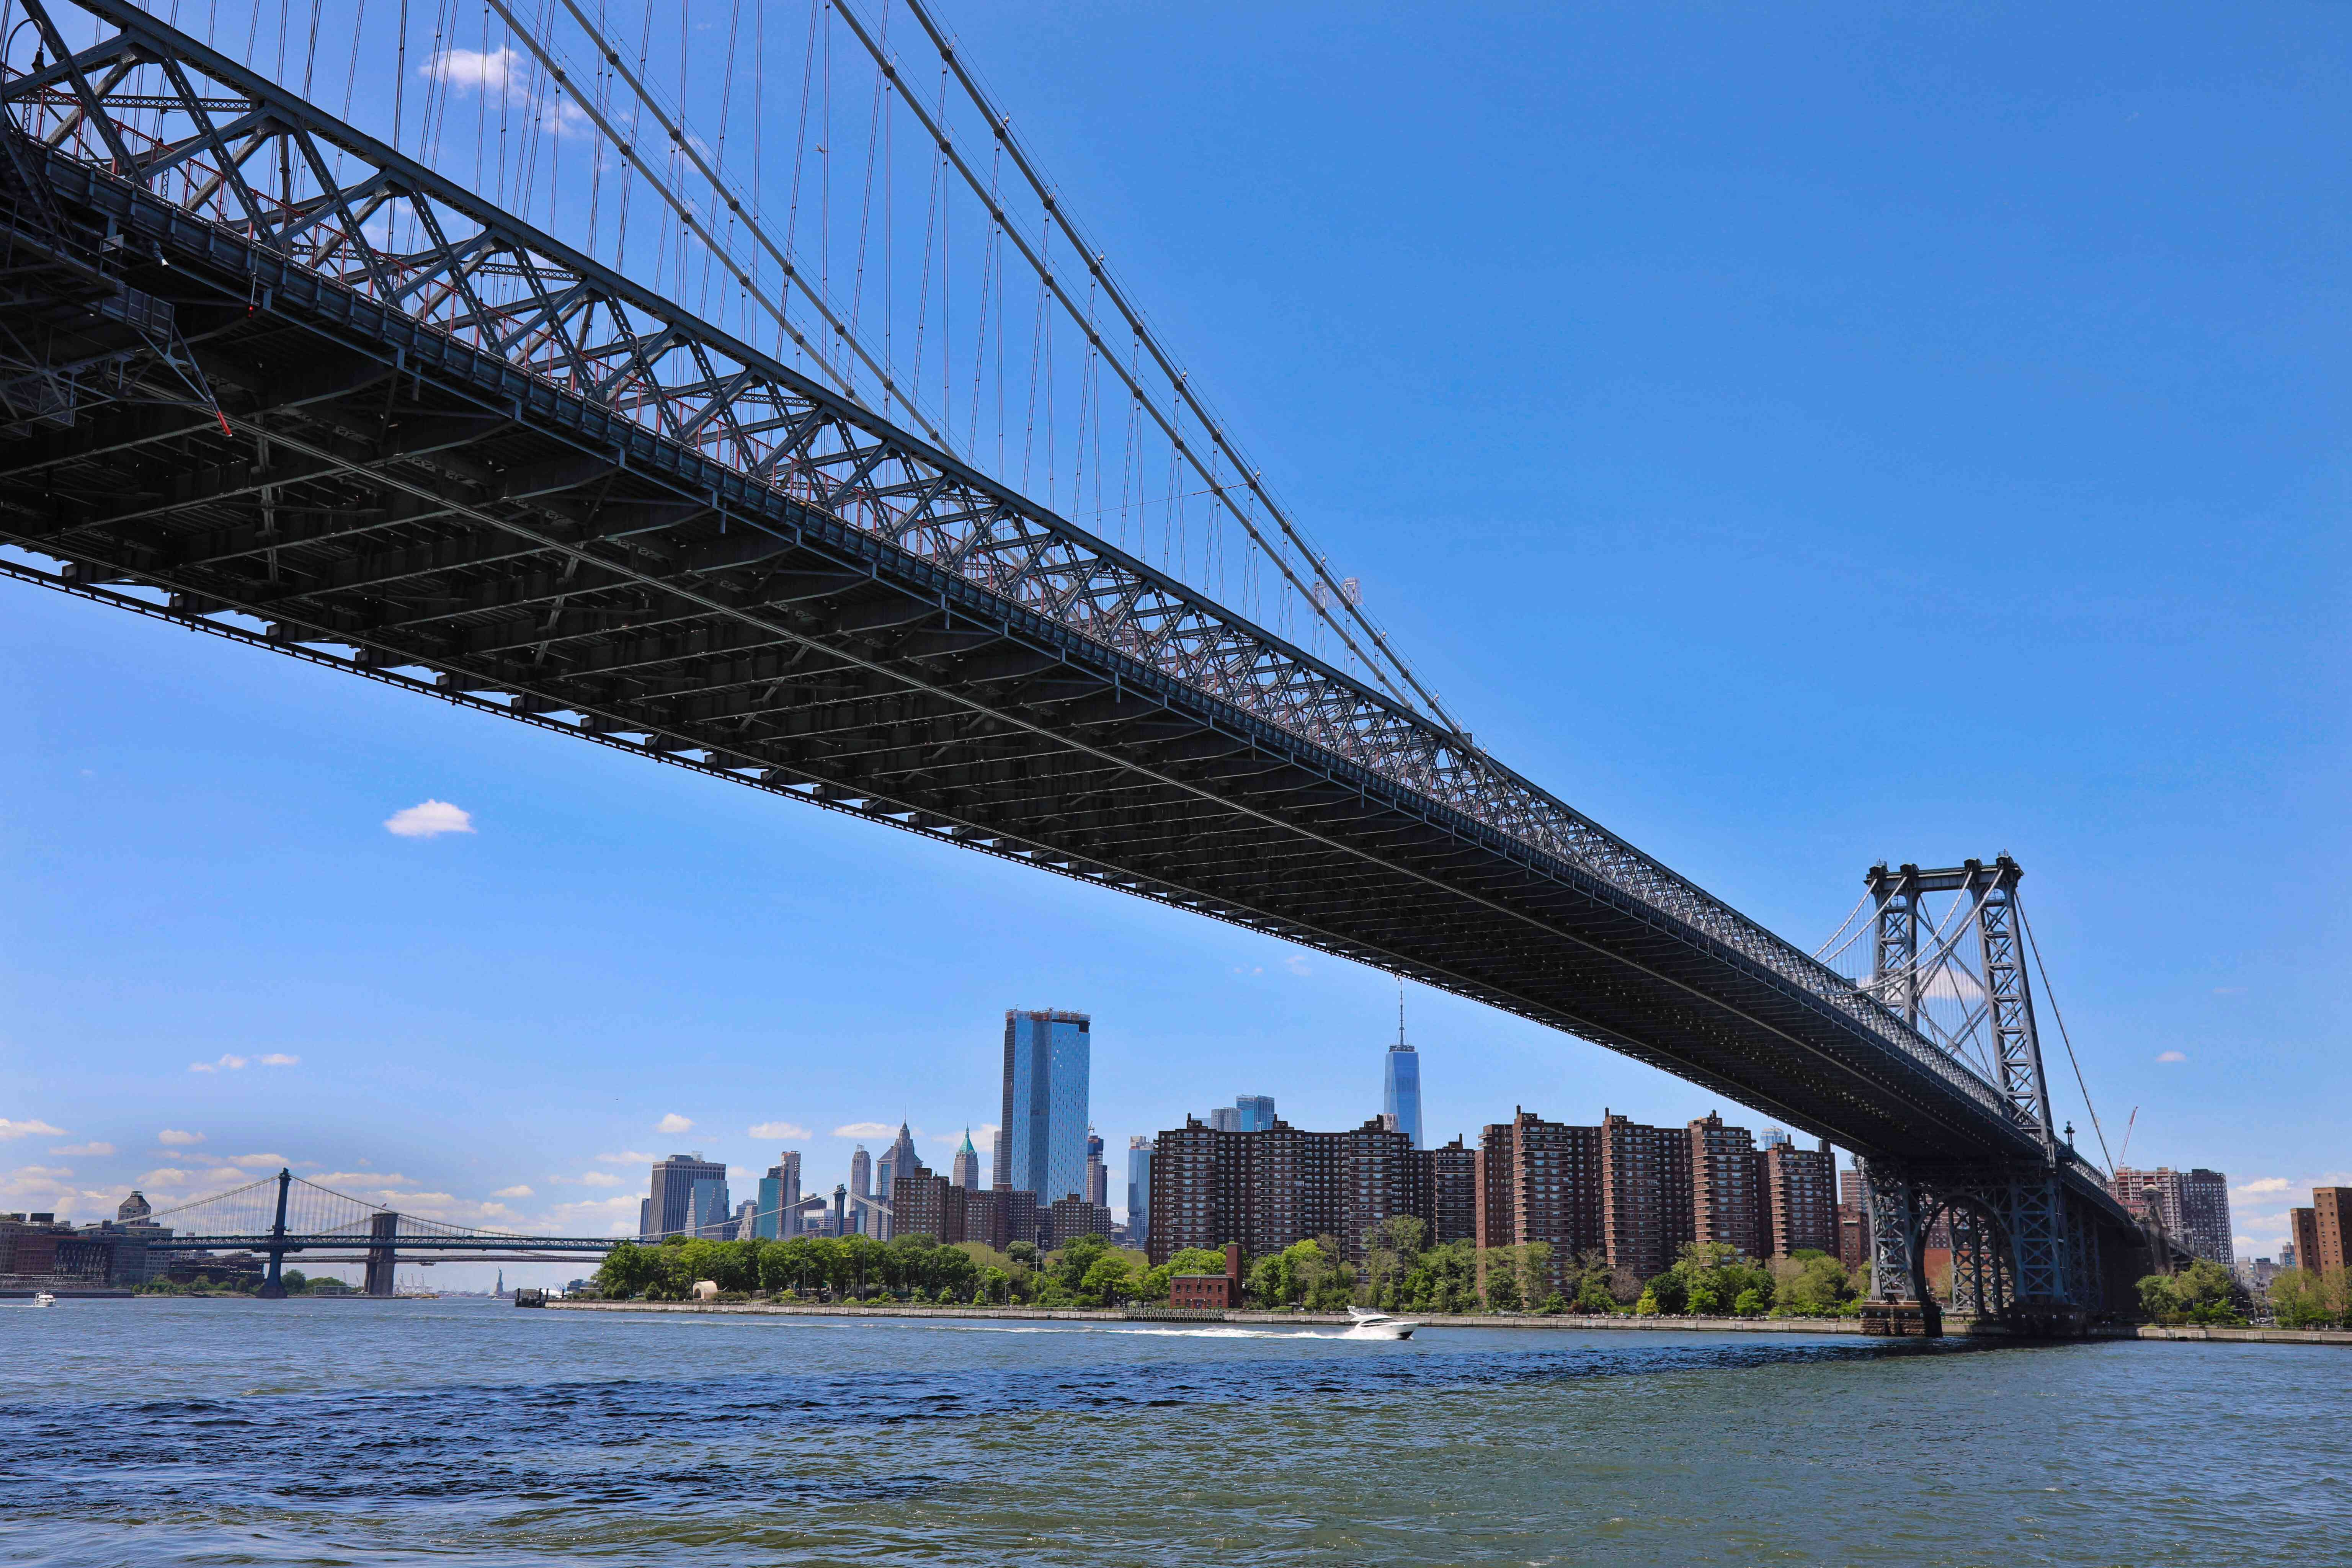 A bridge of the Williamsburg bridge stretching out across the water